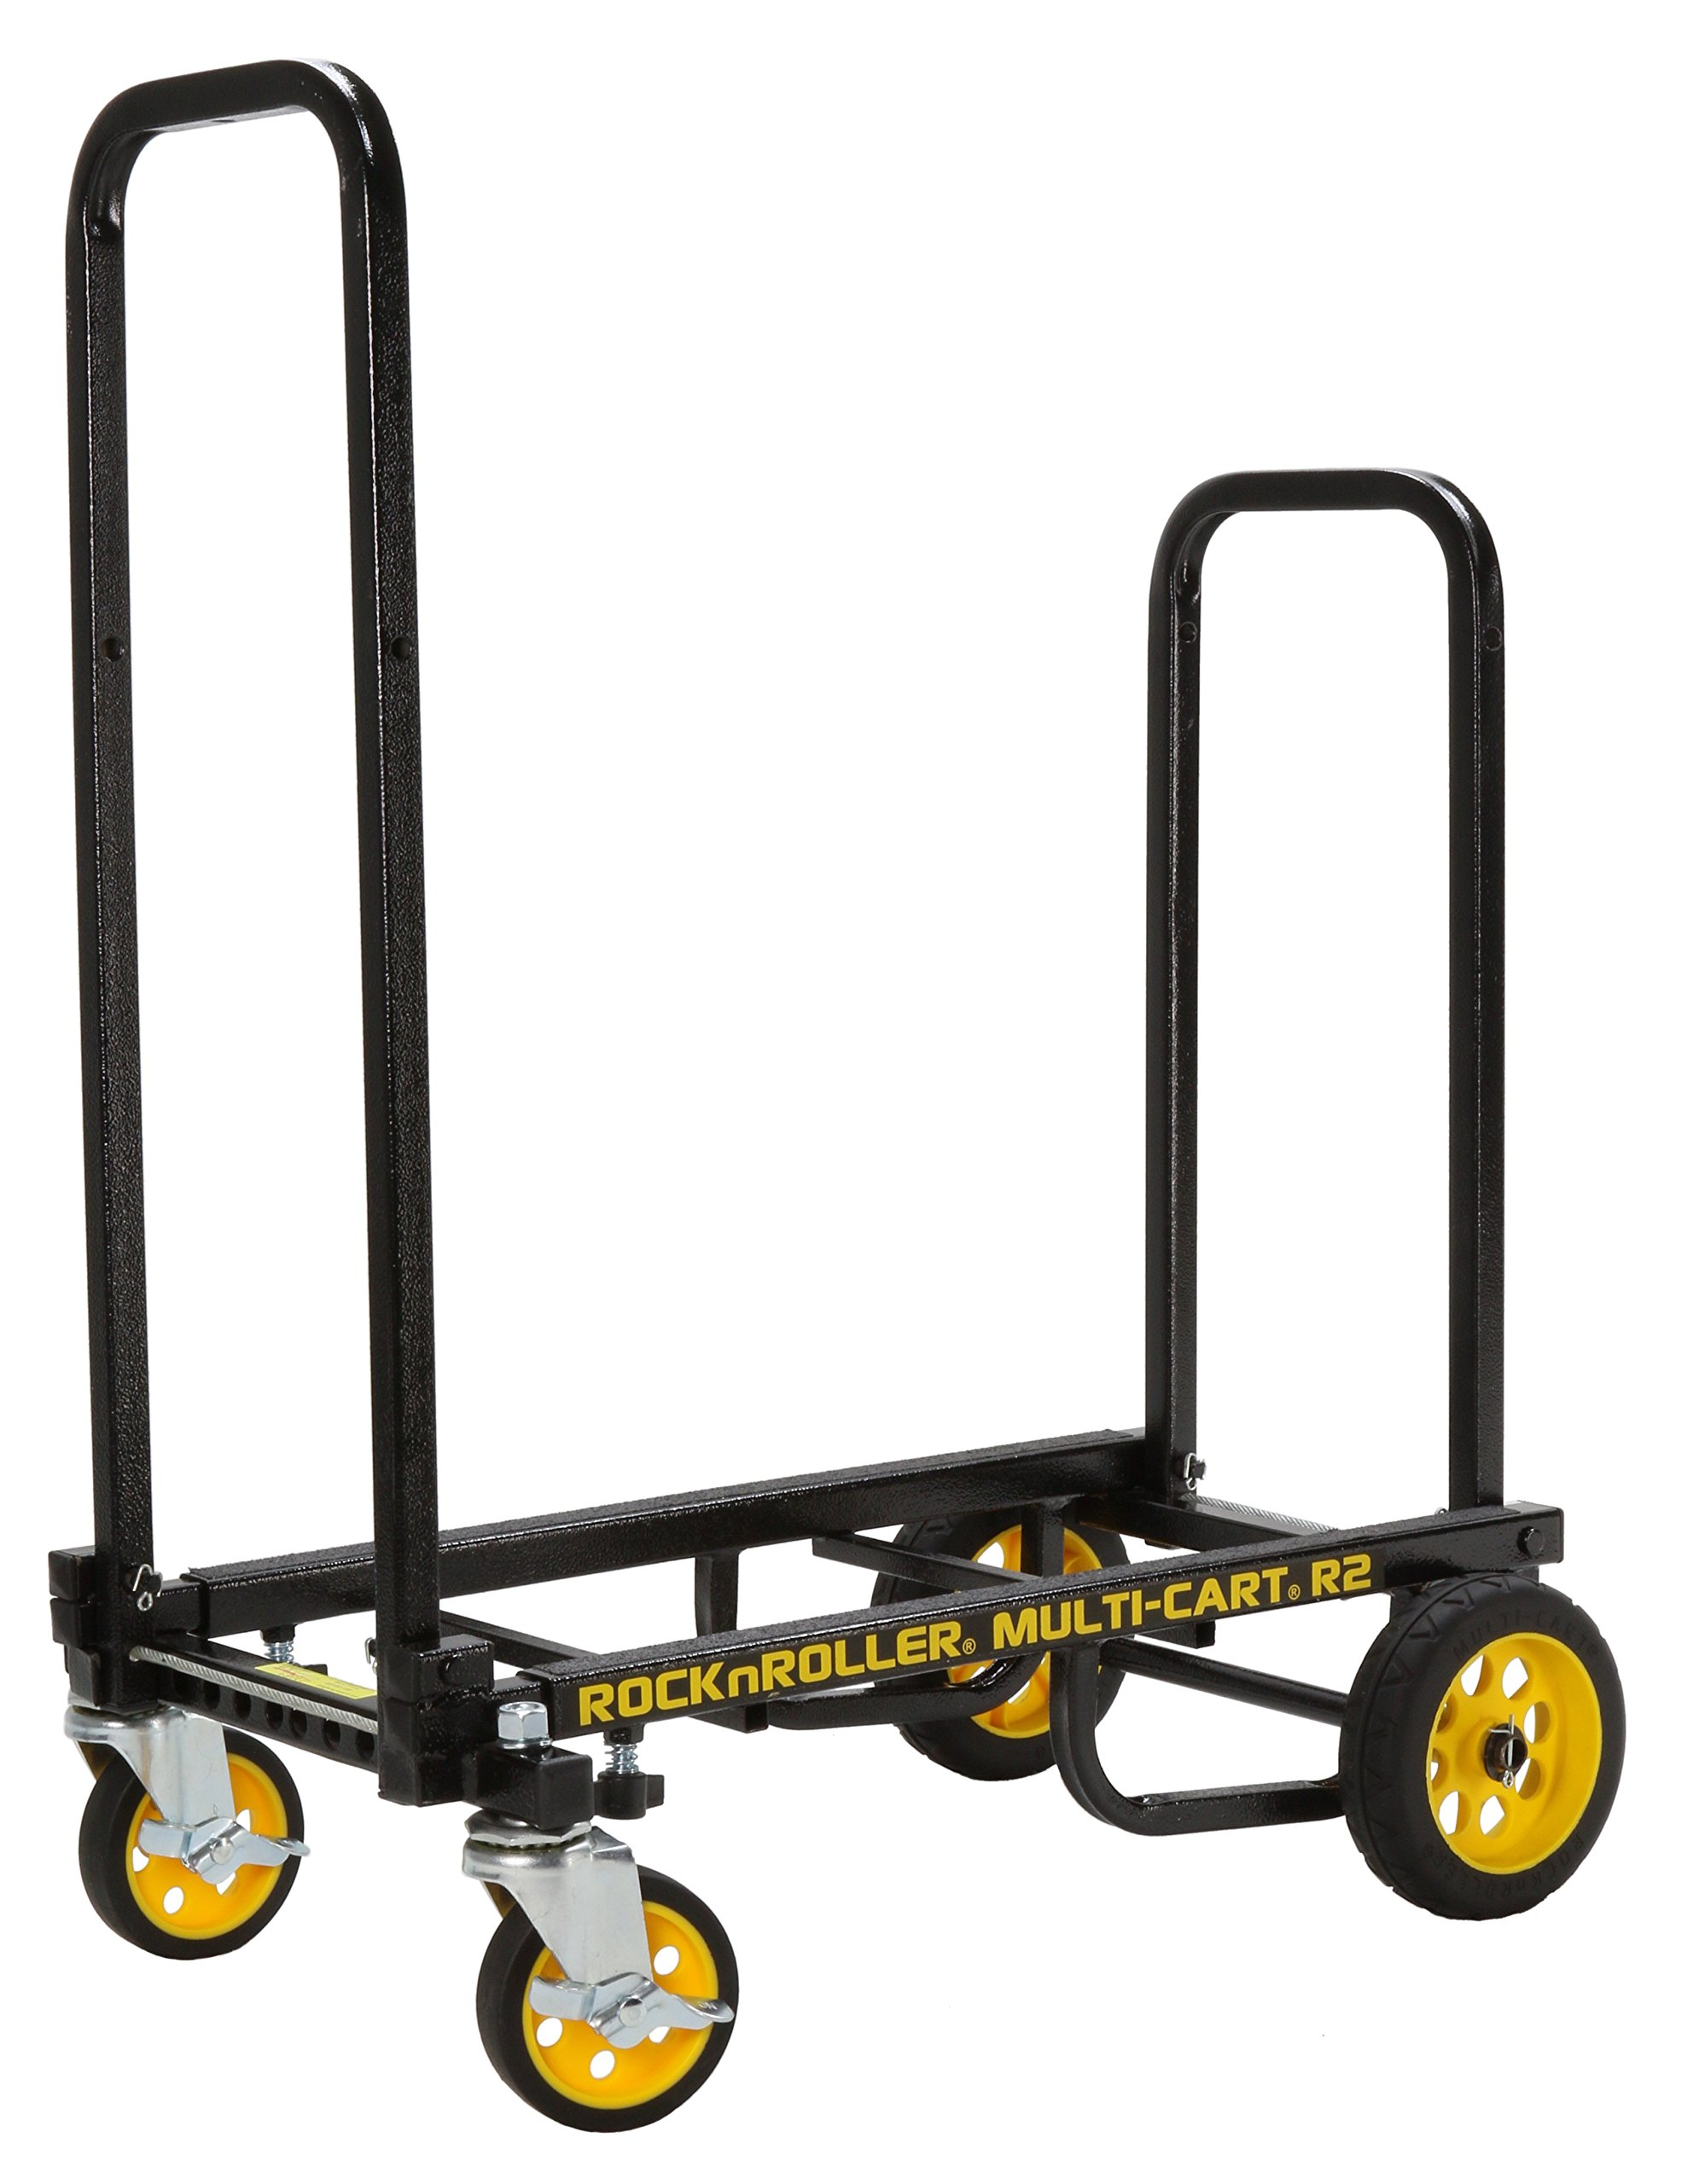 Rock-N-Roller R2RT (Micro) 8-in-1 Folding Multi-Cart/Hand Truck/Dolly/Platform Cart/26'' to 39'' Telescoping Frame/350 lbs. Load Capacity, Black by Rock-N-Roller